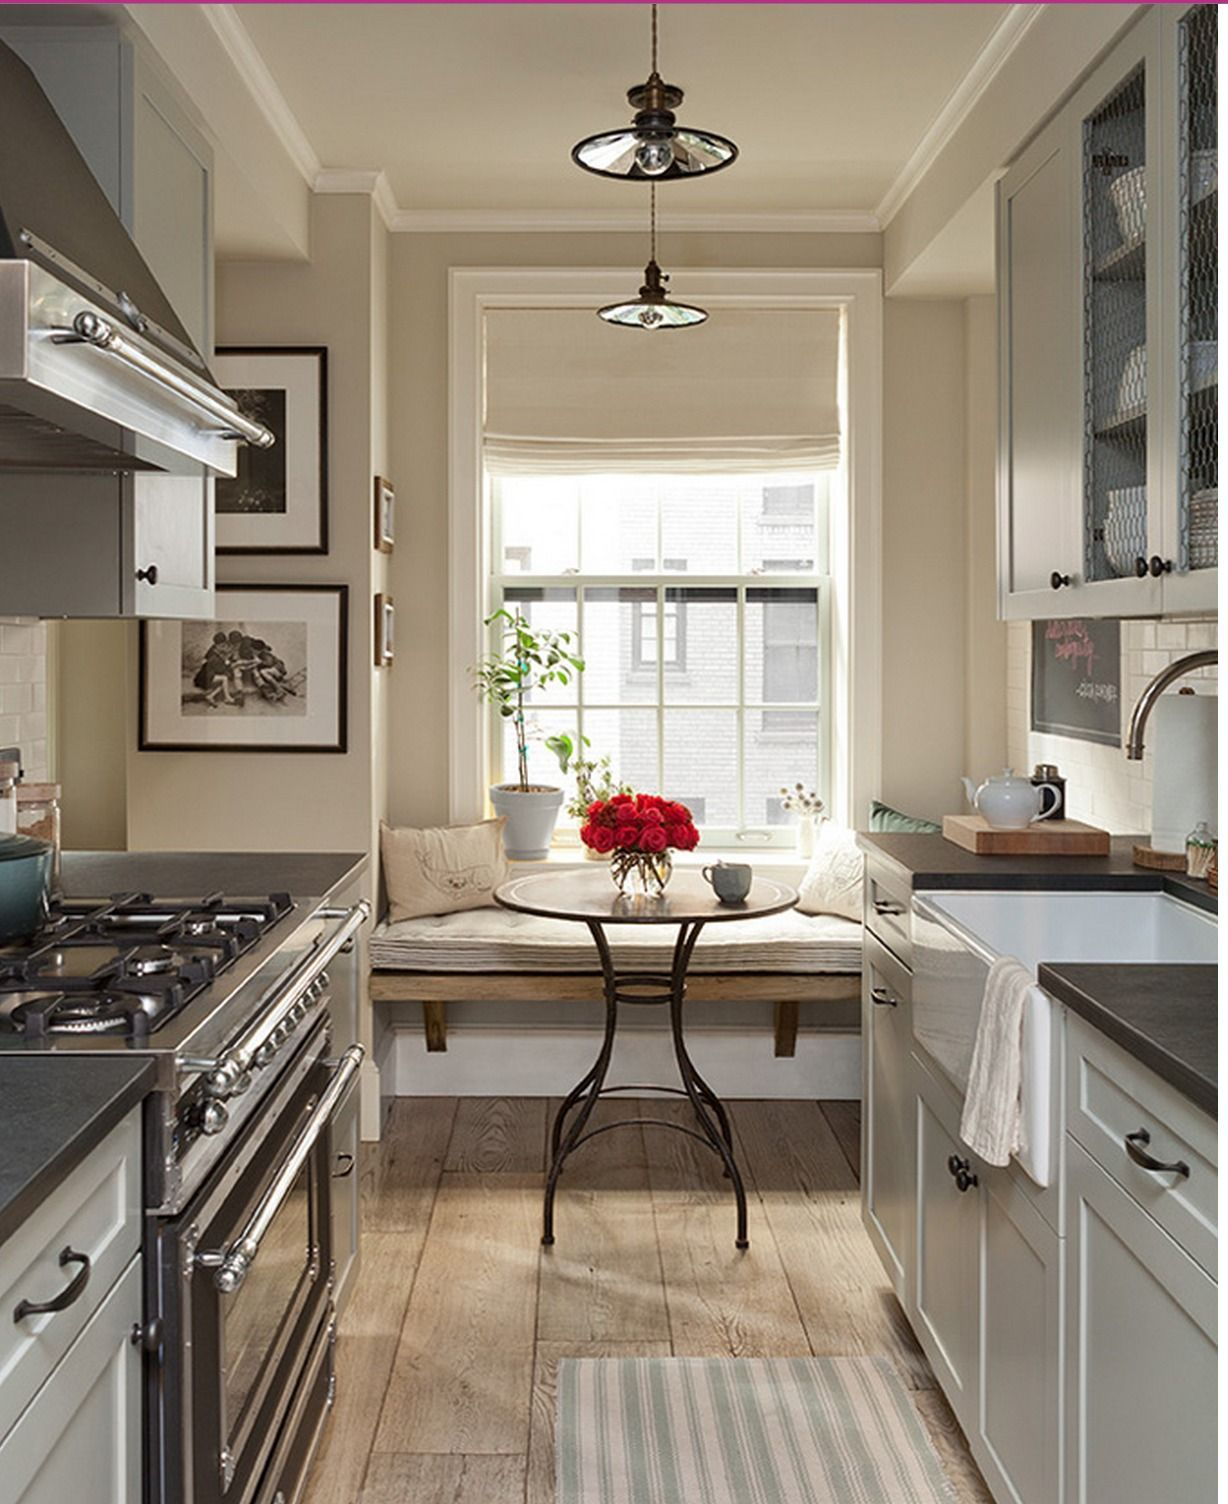 10 Beautiful Kitchen Lighting Ideas Pictures For Small